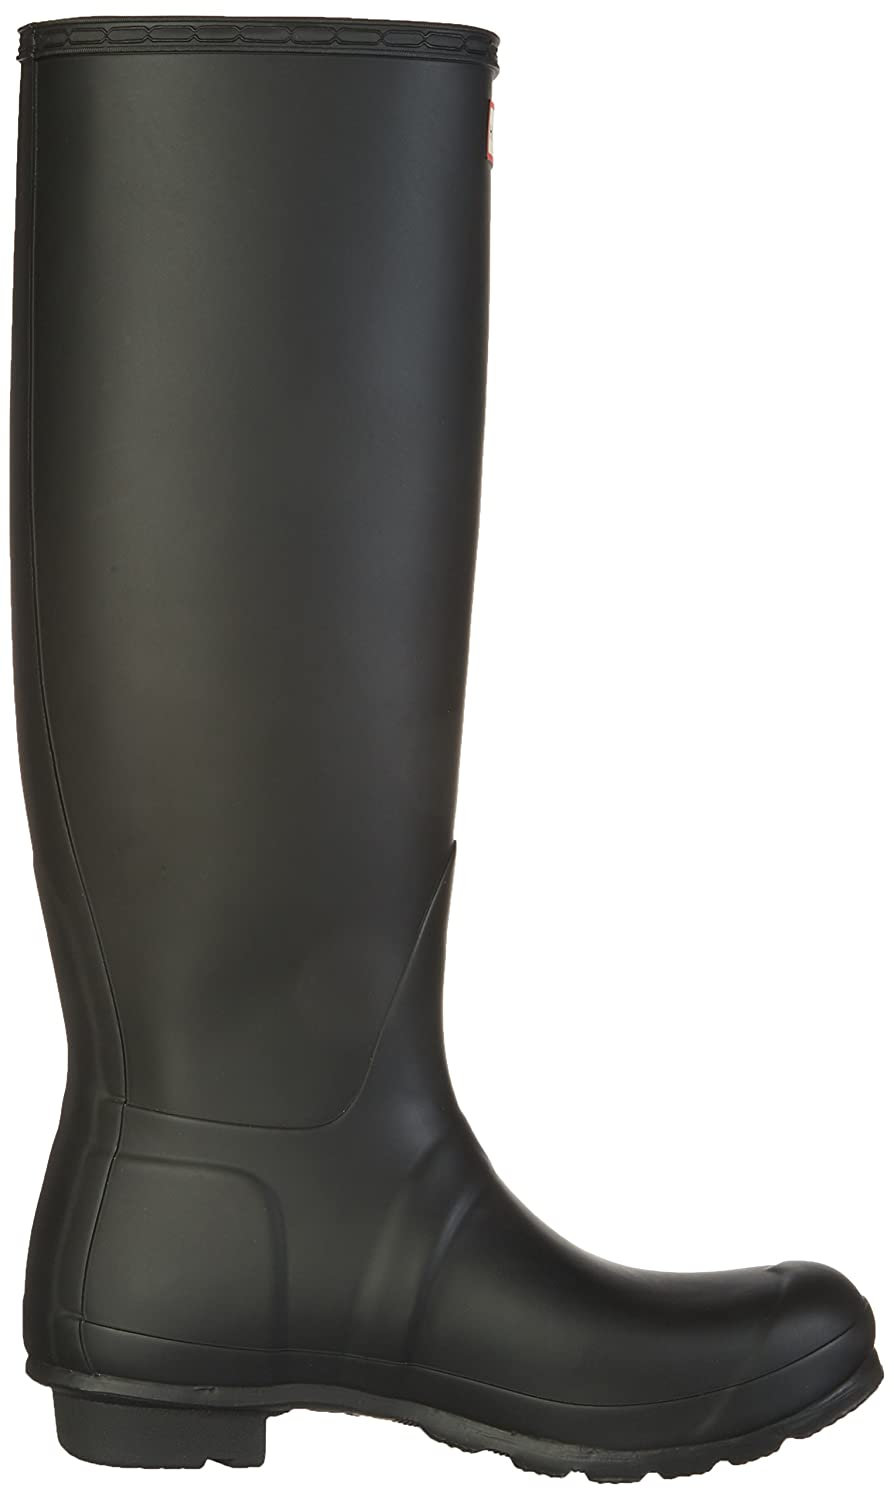 Hunter Boot Women's Original Tall Rain Boot Hunter B01DJ3S8F8 8 B(M) US|Black 3fa7ef